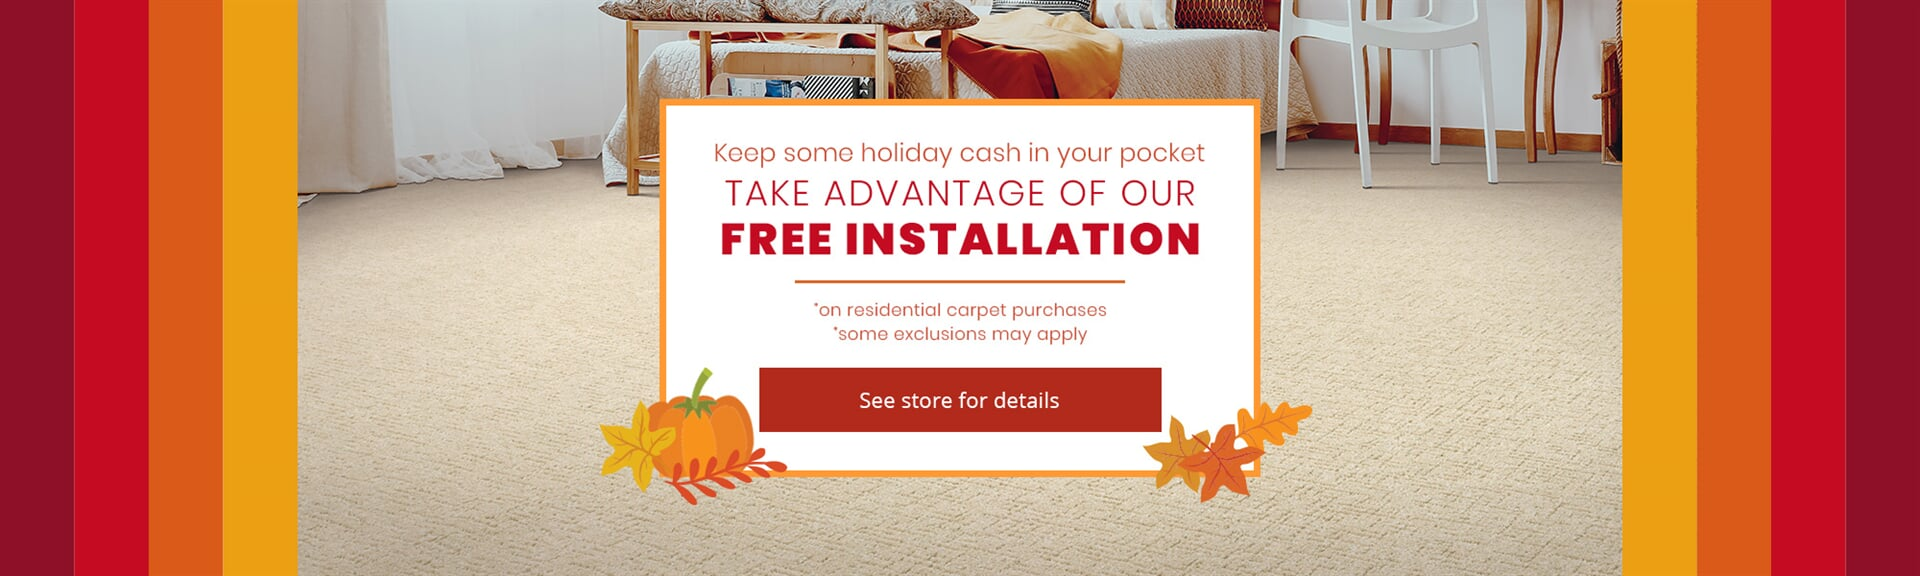 Free installation on residential carpets in  from Appleton Carpetland USA